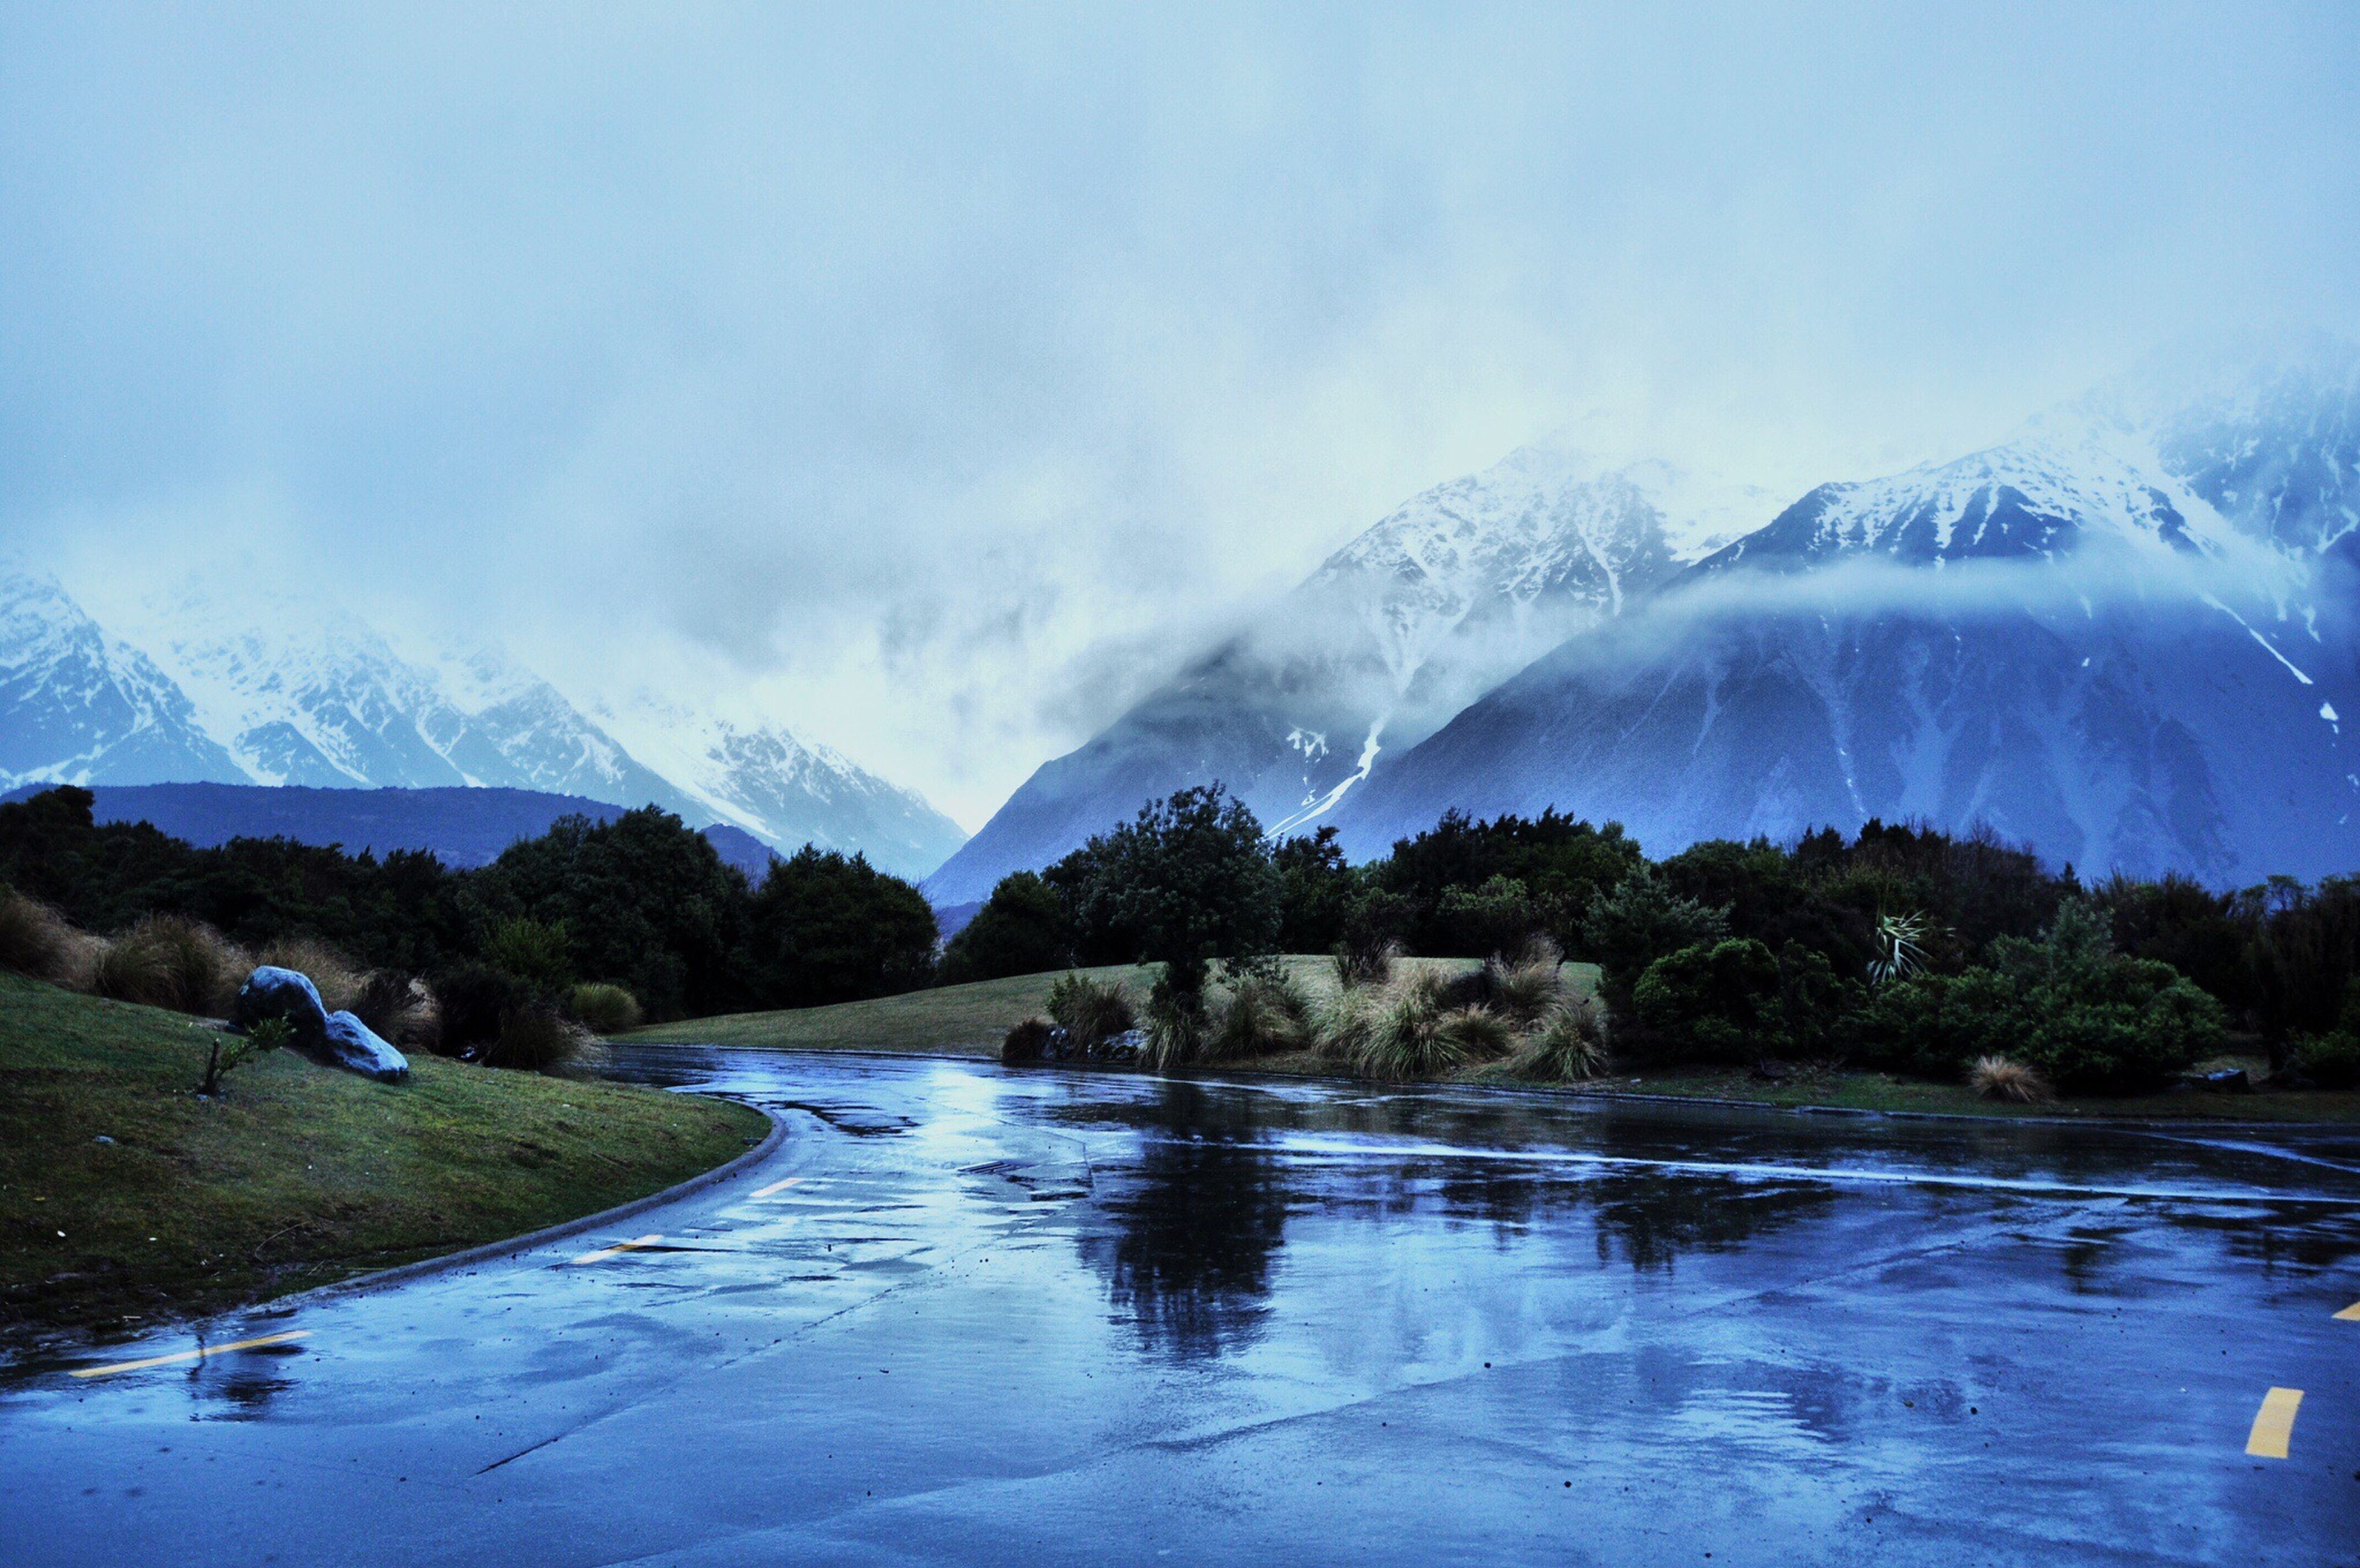 winter, snow, cold temperature, mountain, season, snowcapped mountain, water, scenics, tranquil scene, mountain range, beauty in nature, weather, tranquility, lake, frozen, nature, sky, landscape, covering, non-urban scene